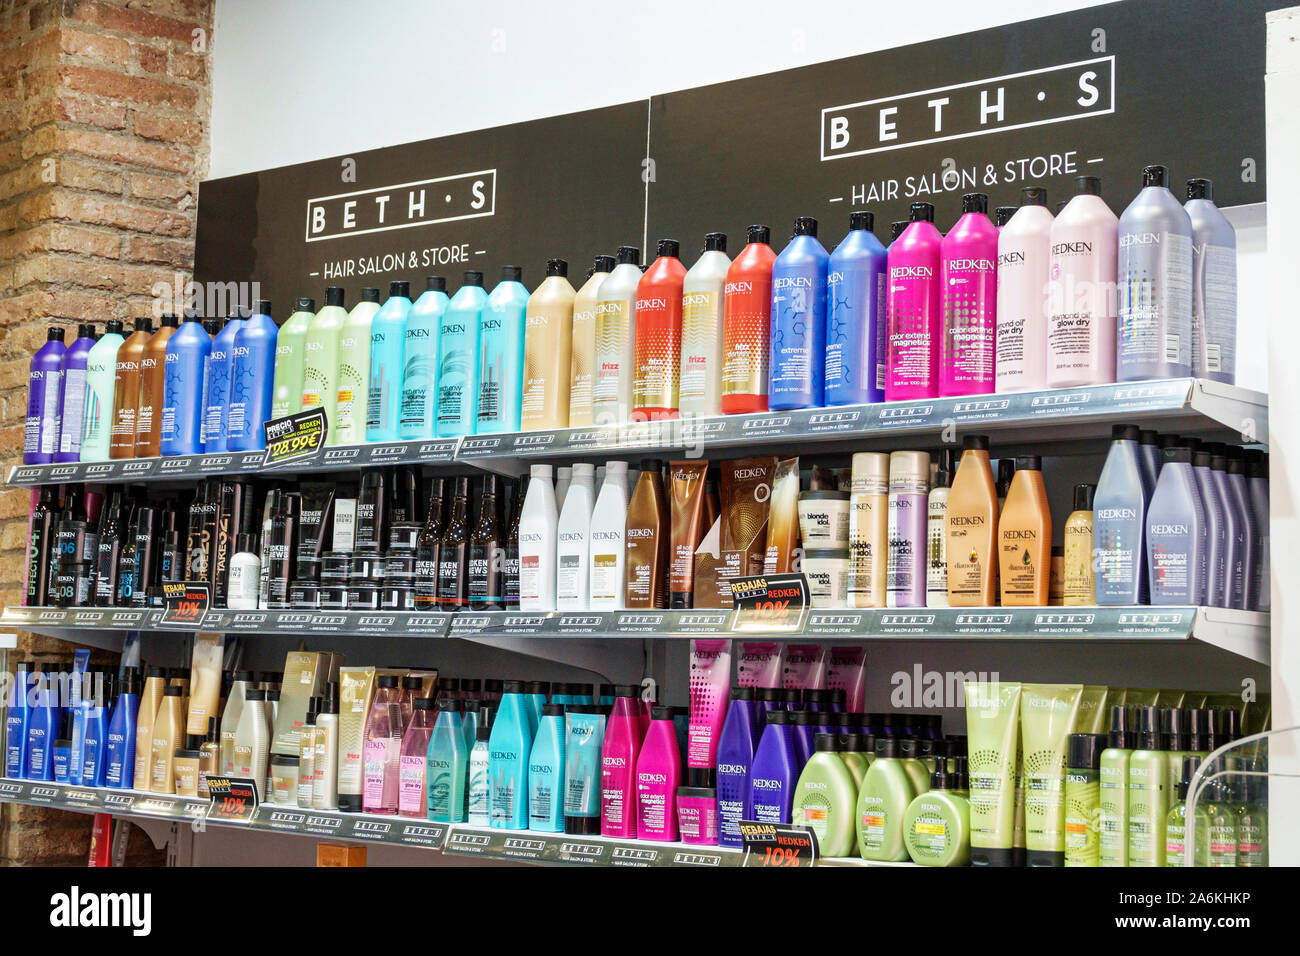 Hair Care Products High Resolution Stock Photography And Images Alamy